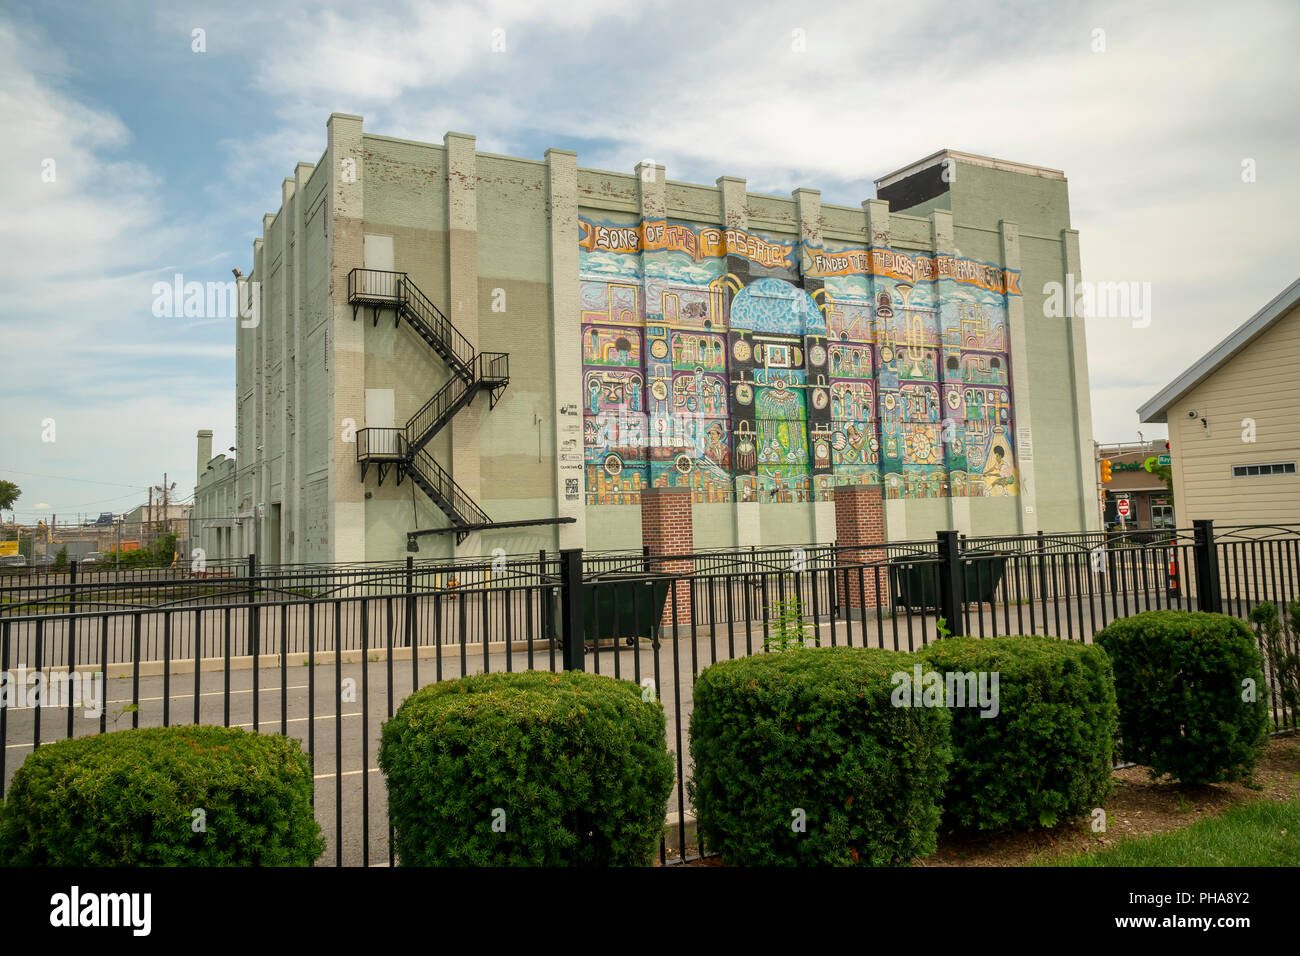 'Song of the Passaic' mural overlooking Newark Riverfront Park in Newark, NJ on Saturday, August 25, 2018.  (© Richard B. Levine) - Stock Image